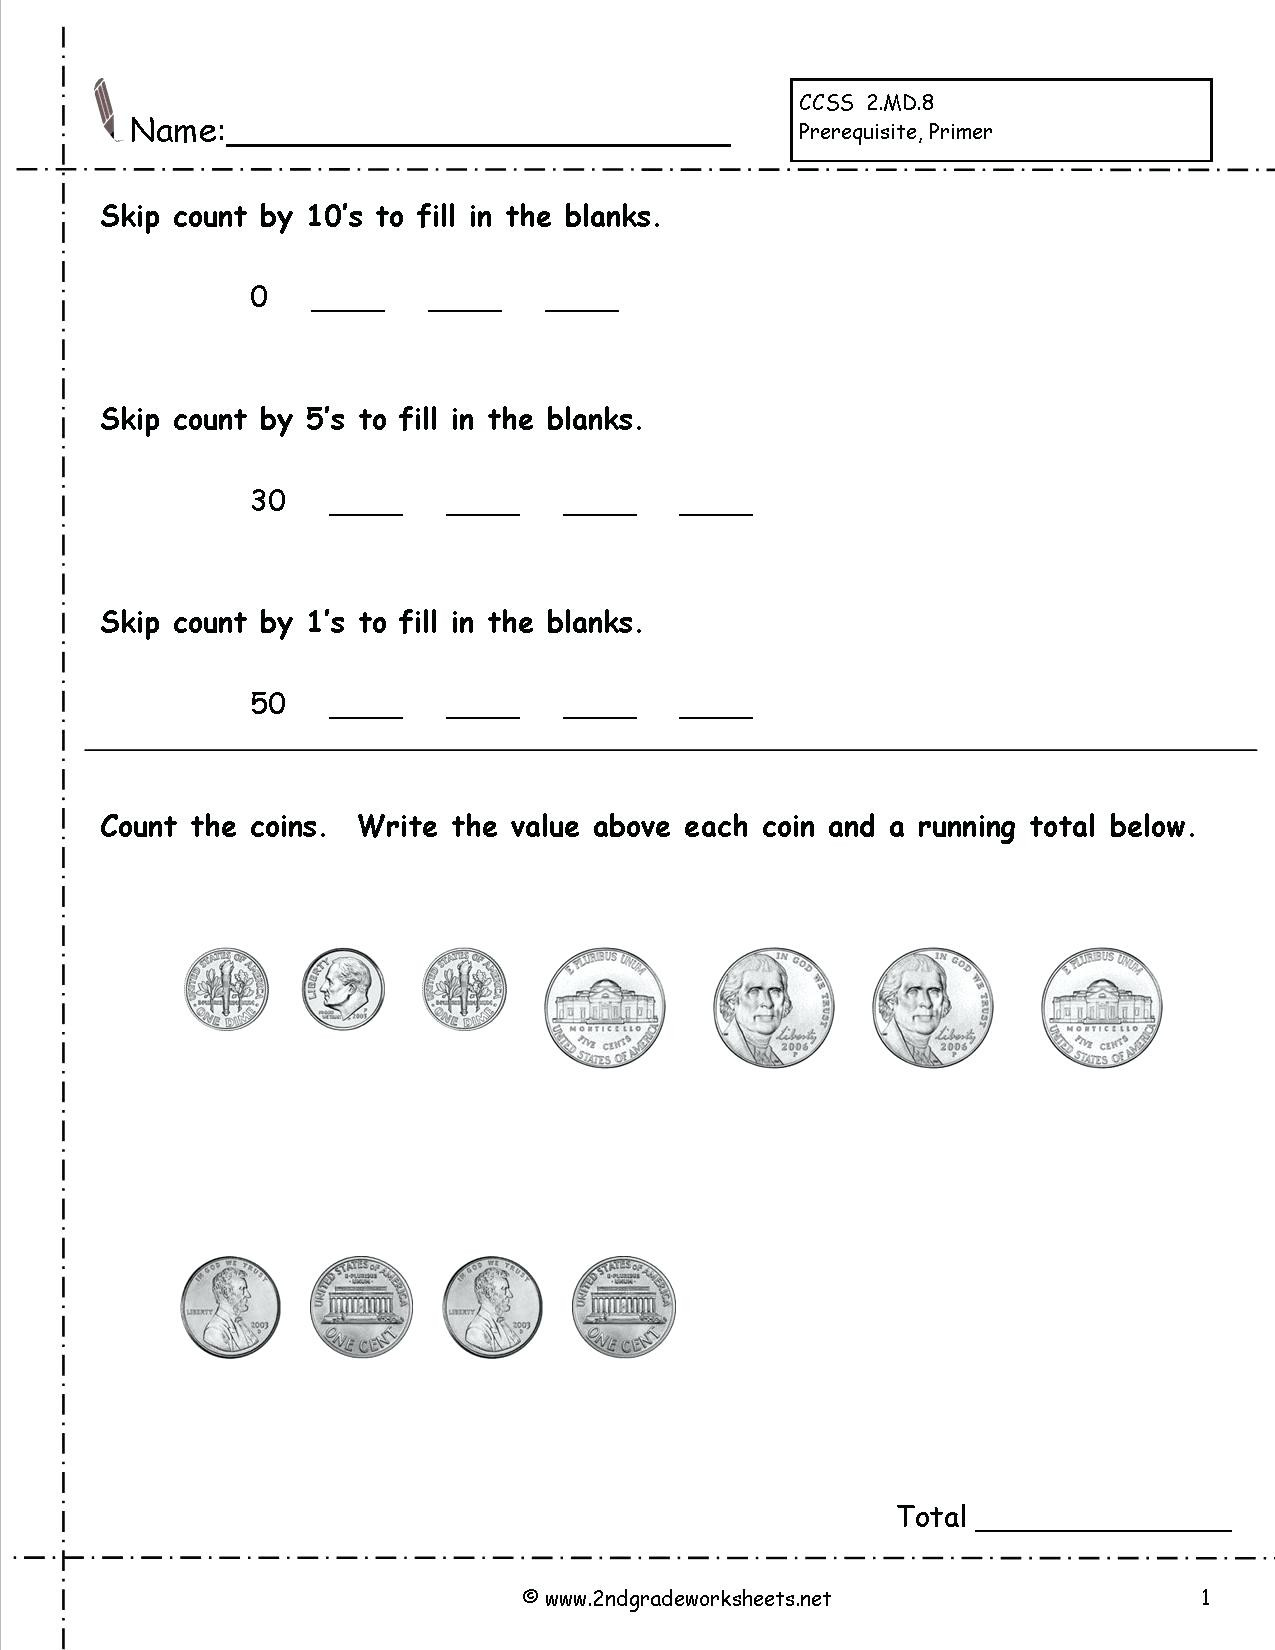 Skip Counting Worksheets 2nd Grade Money Worksheets for 2nd Graders Gta V Earn Money